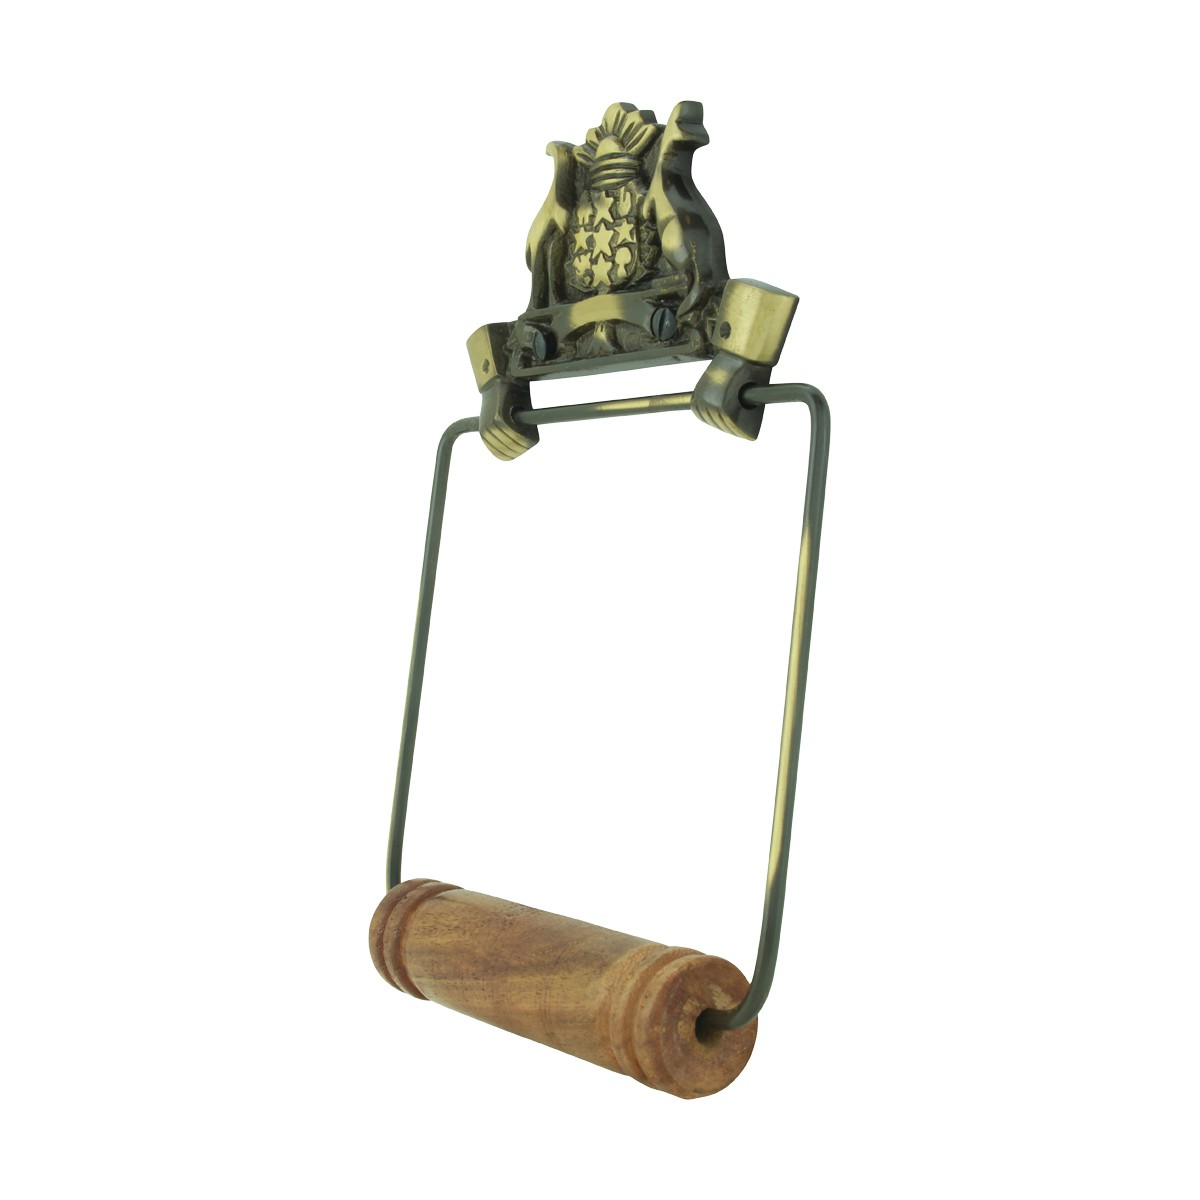 Toilet Paper Holder Wall Mount Antique Brass Victorian Hands Tissue Holder toilet paper holder stand tissue holder for bathroom toilet paper holder wall mount